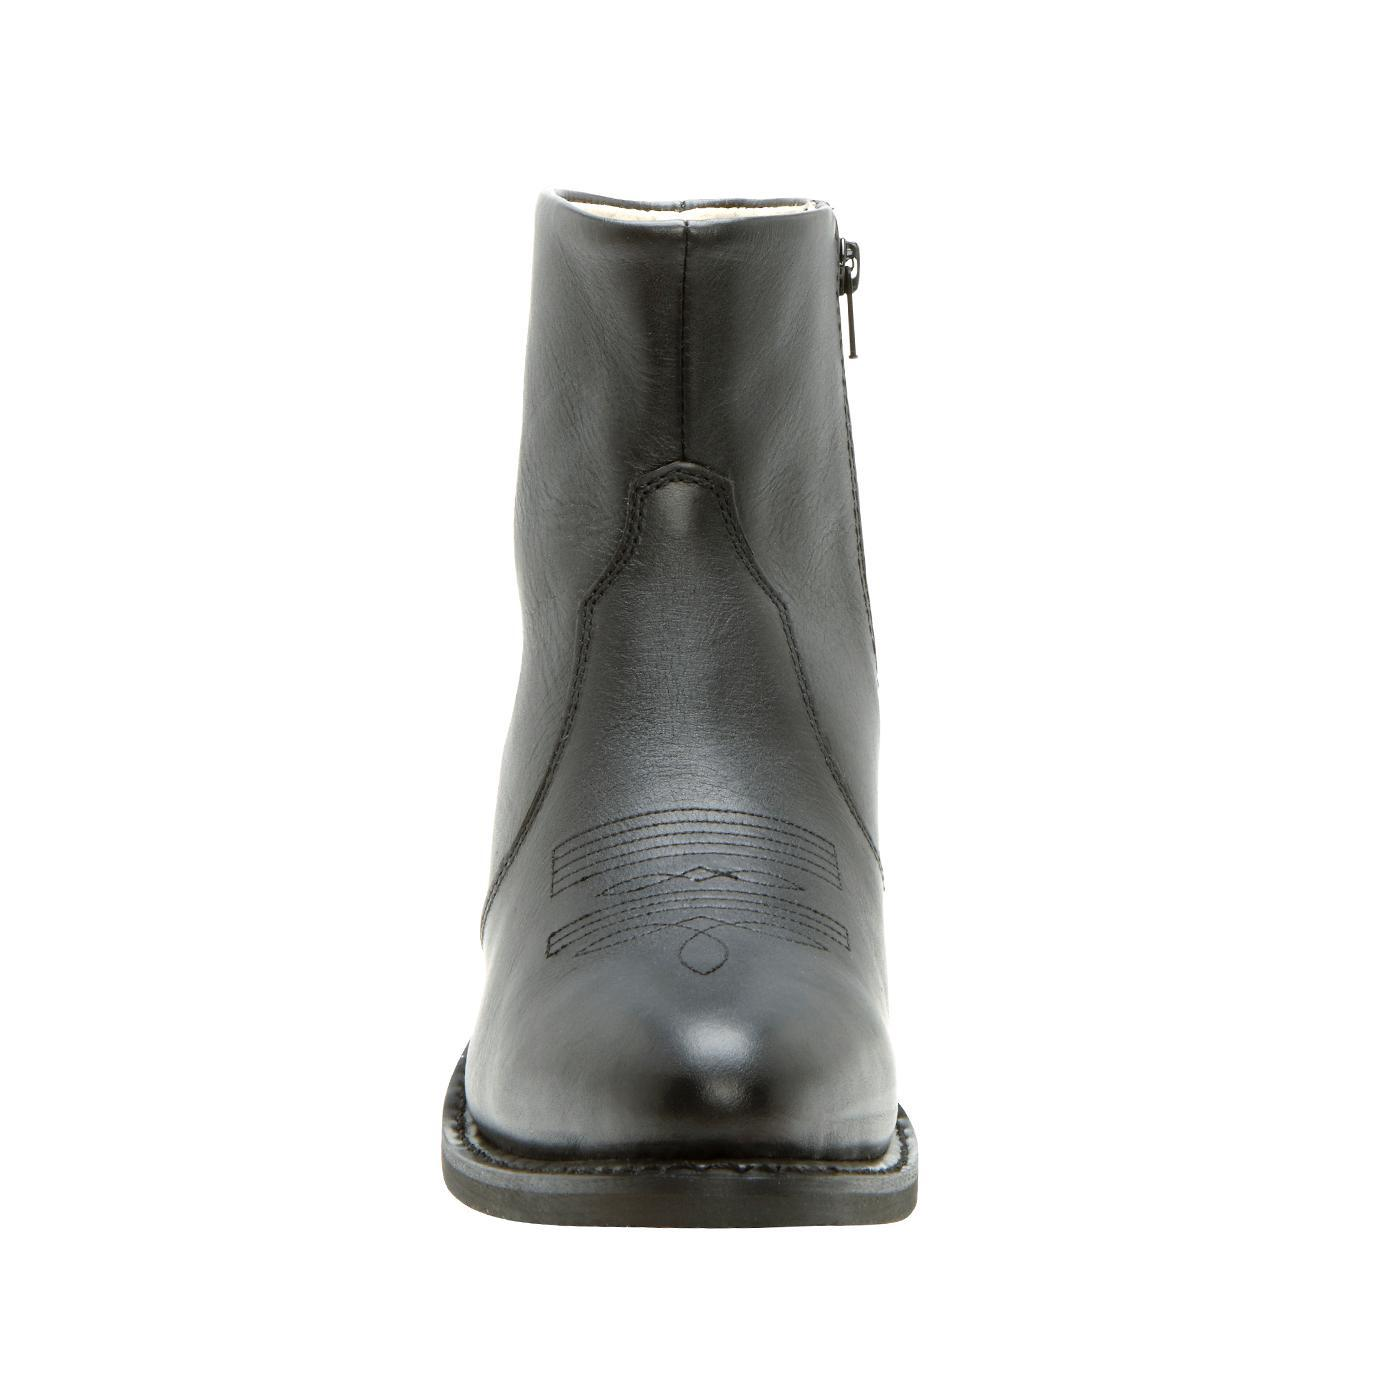 9d672f3830d01 Durango Boots  Men s Black Leather Side Zip Western Boots - Style  DB950